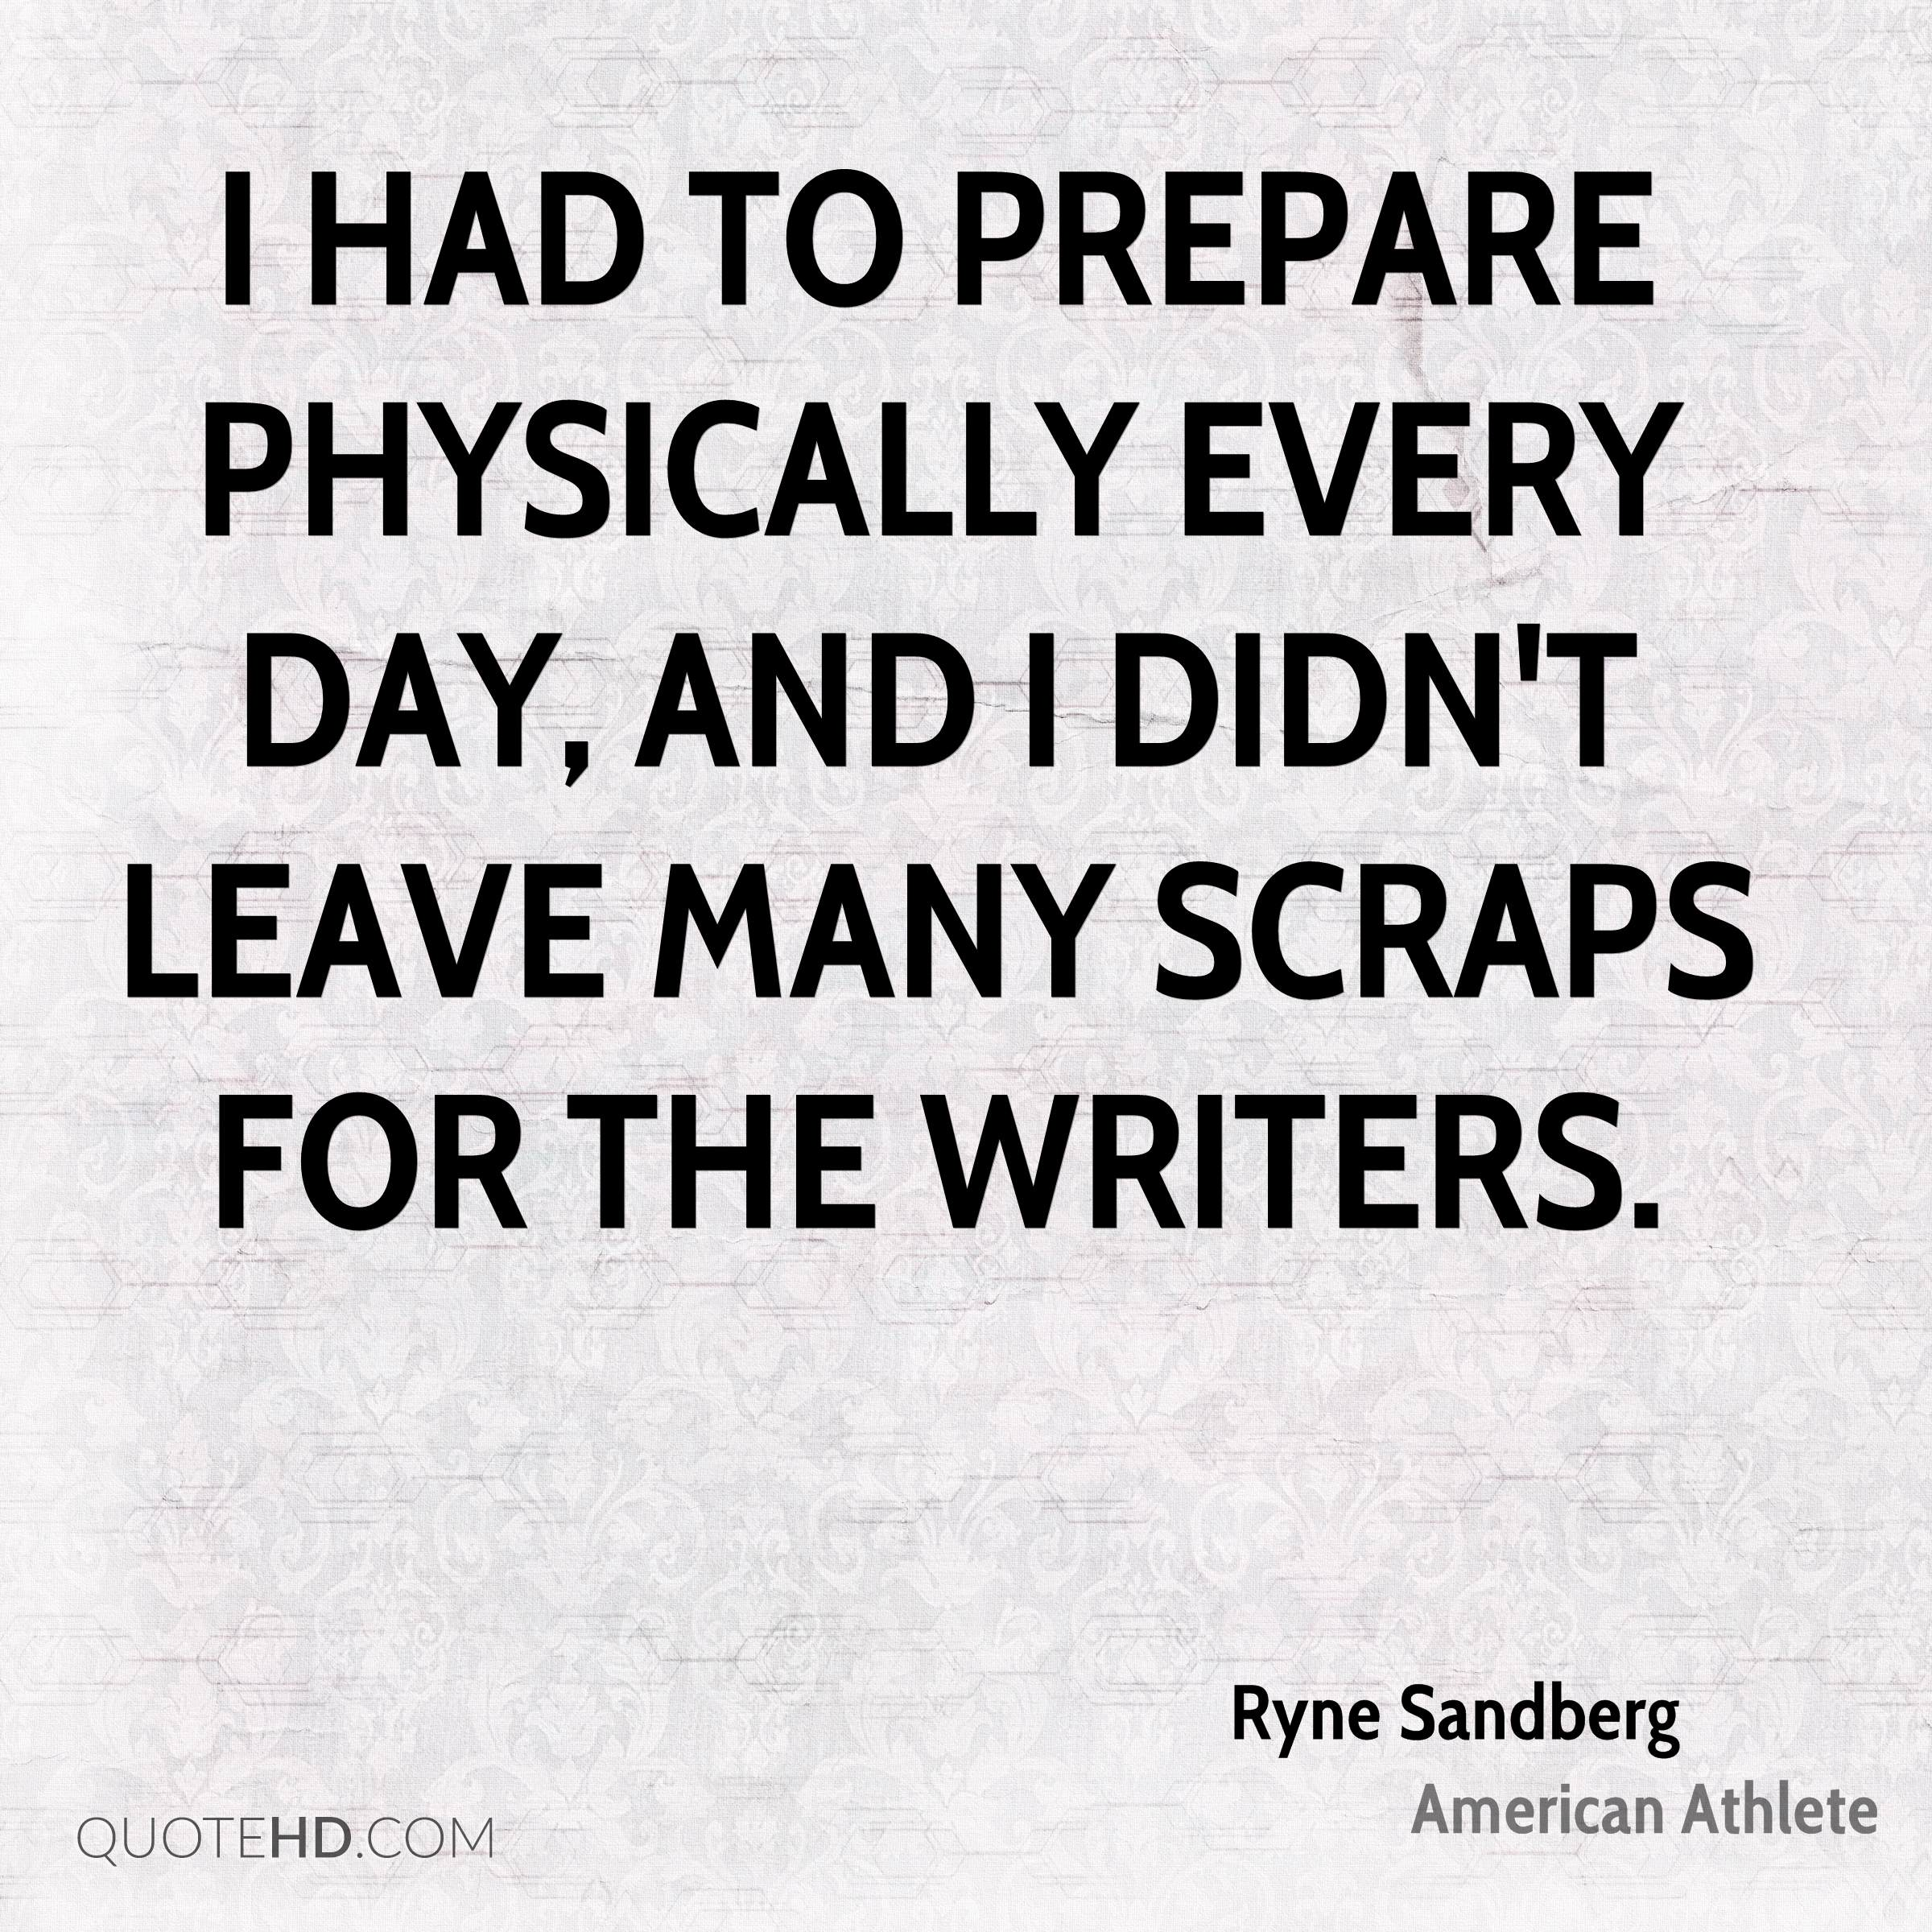 I had to prepare physically every day, and I didn't leave many scraps for the writers.